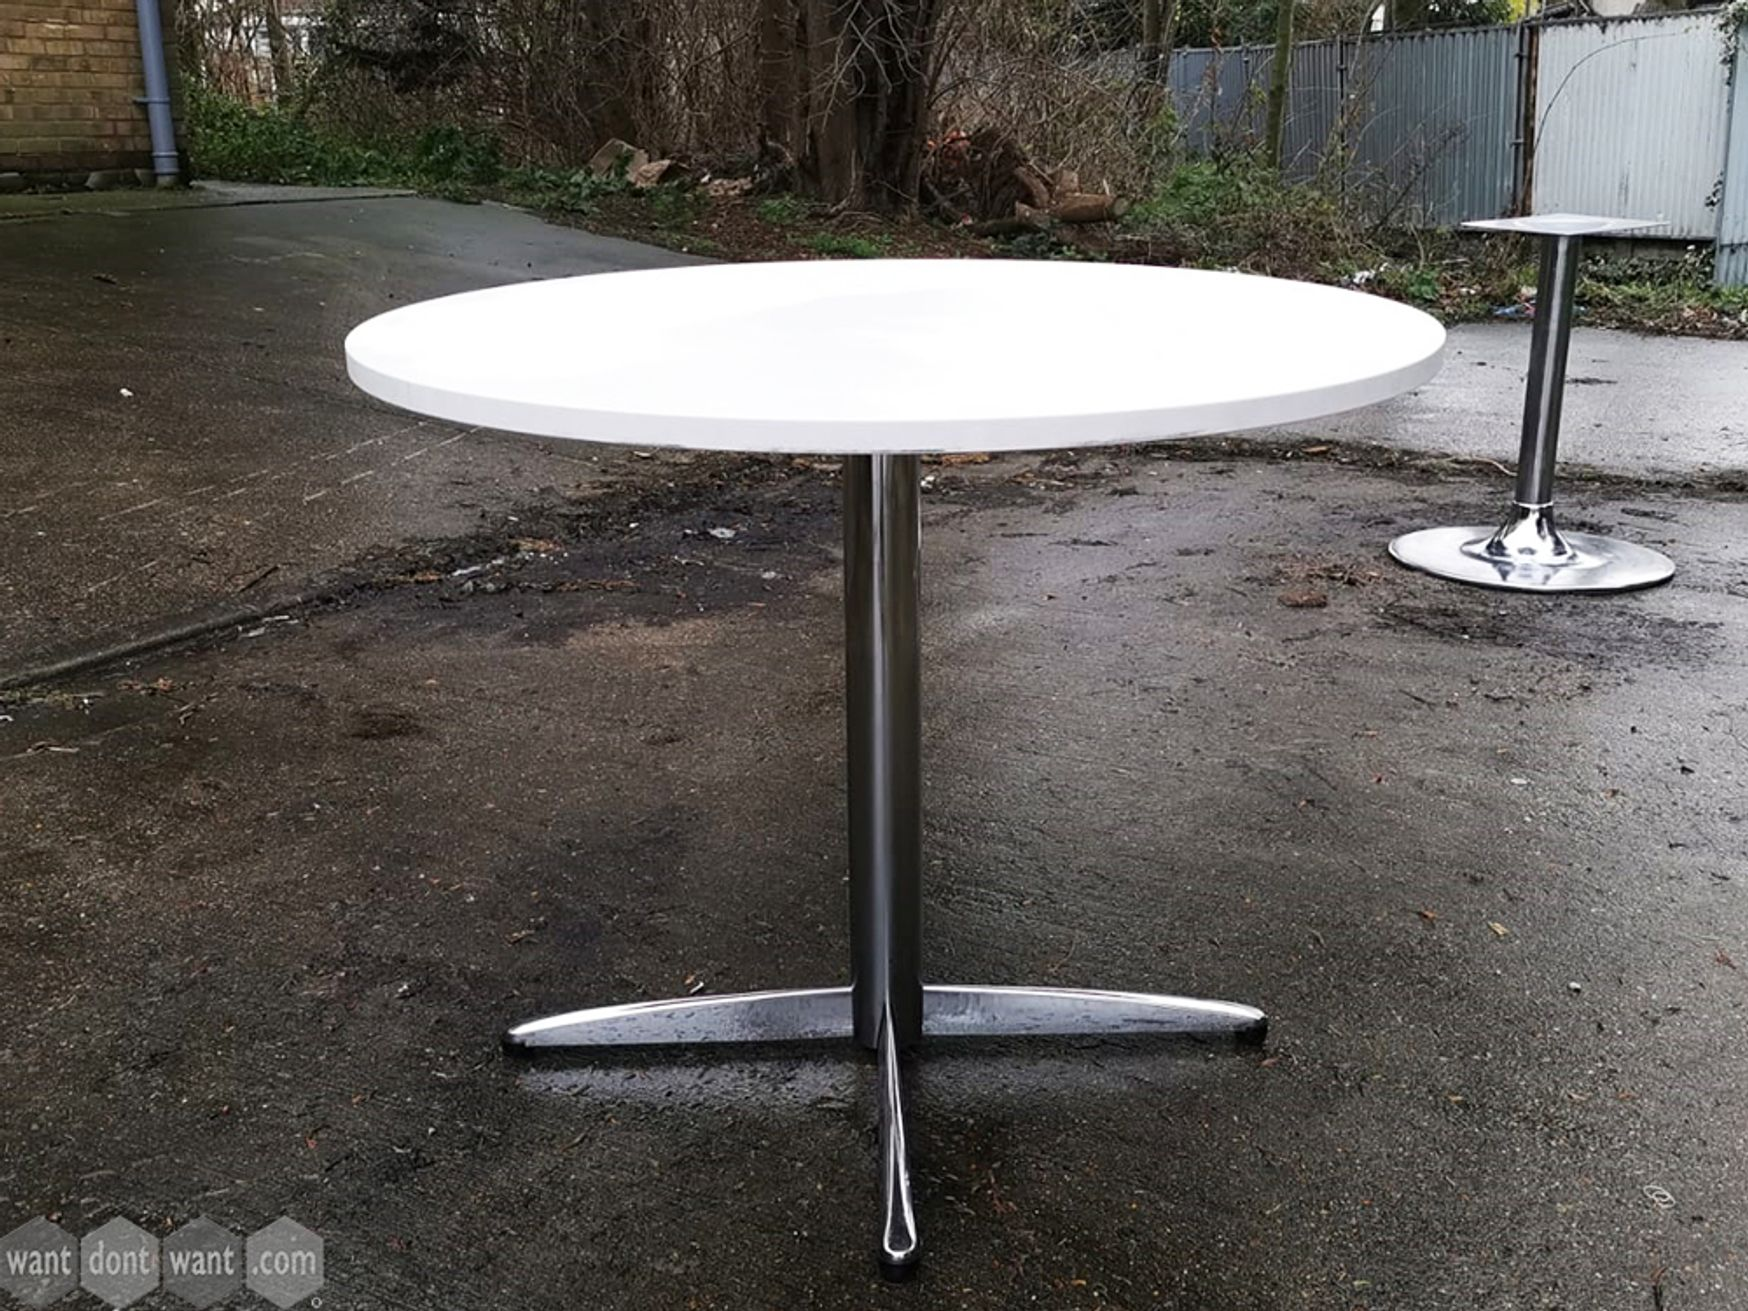 Used Circular Table with Chrome 4 Star Base